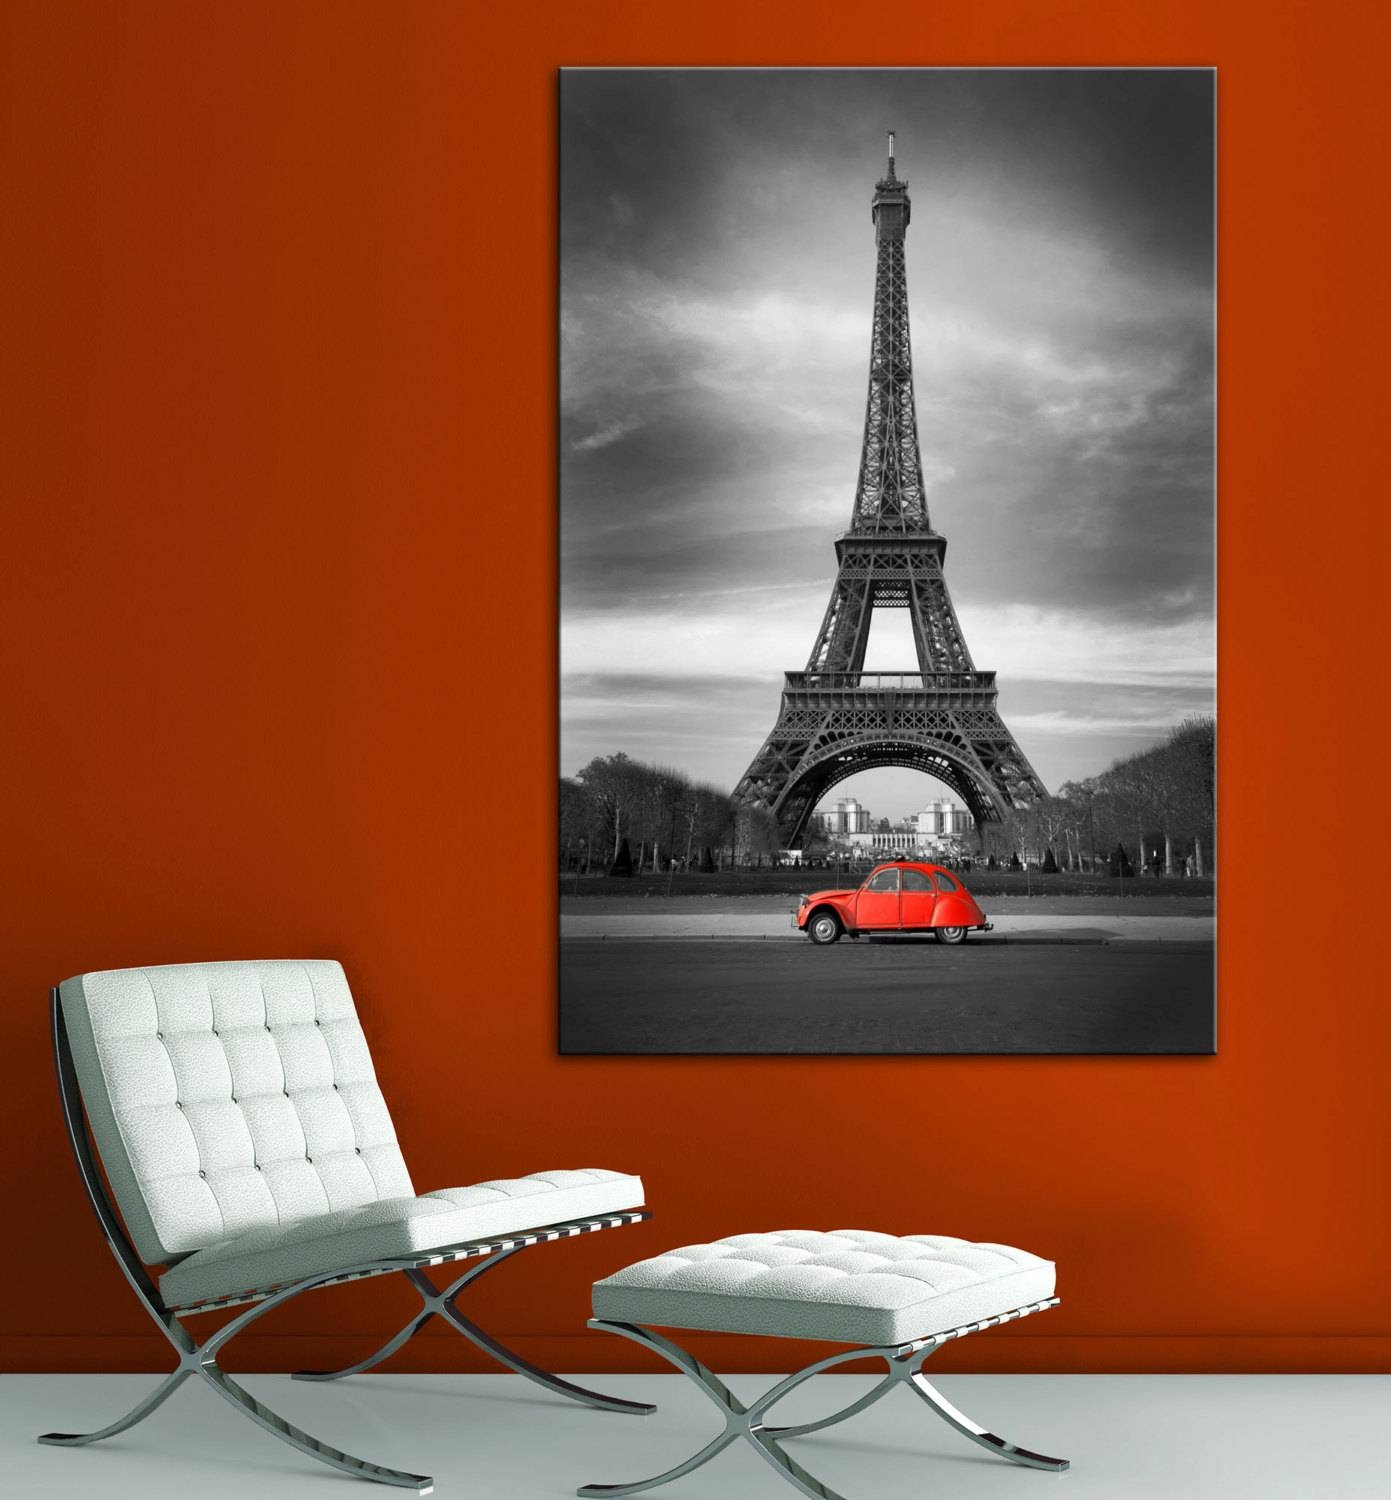 Eiffel Tower Red Car Paris Black White Wall Art Canvas Giclee Throughout Most Recent Black And White Paris Wall Art (View 8 of 25)